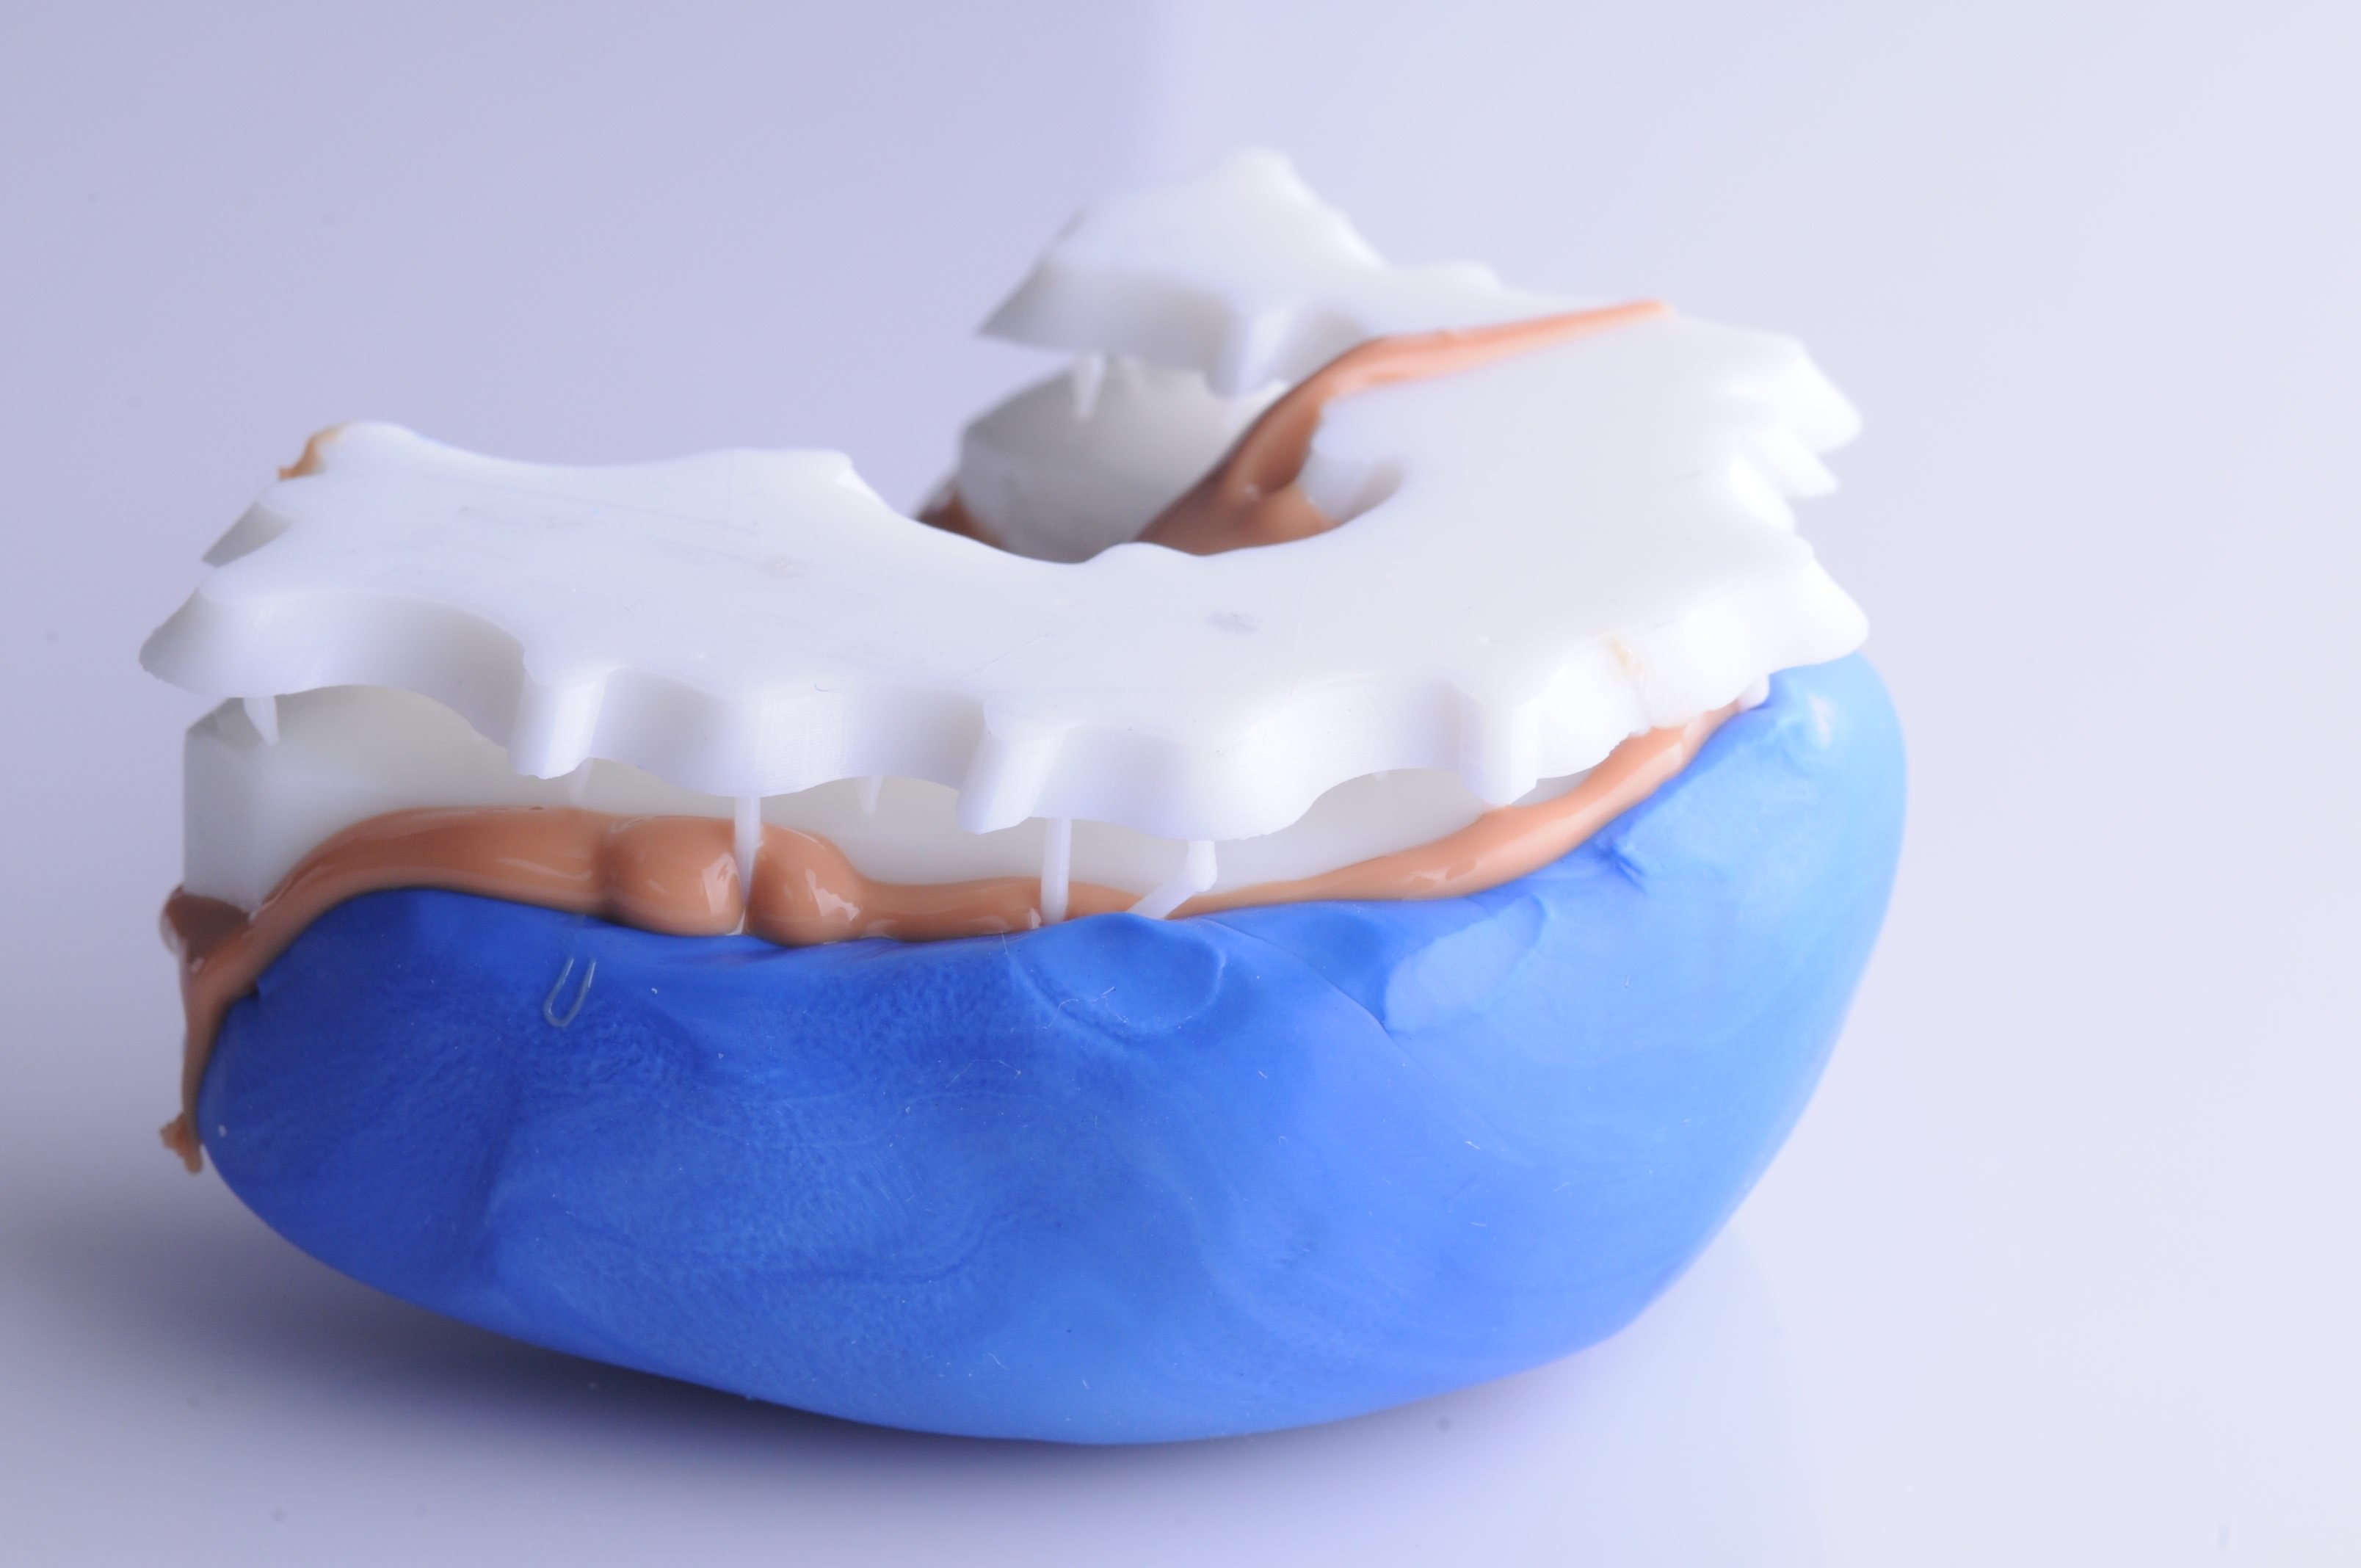 The 3D printed dental model overlapped with the restorations is placed in a silicone index to create a negative of the teeth. With the traditional analog method, the practioner would take a regular impression from the patient and send it to a dental technician who would start adding wax over the stone model, drop by drop, tooth by tooth.